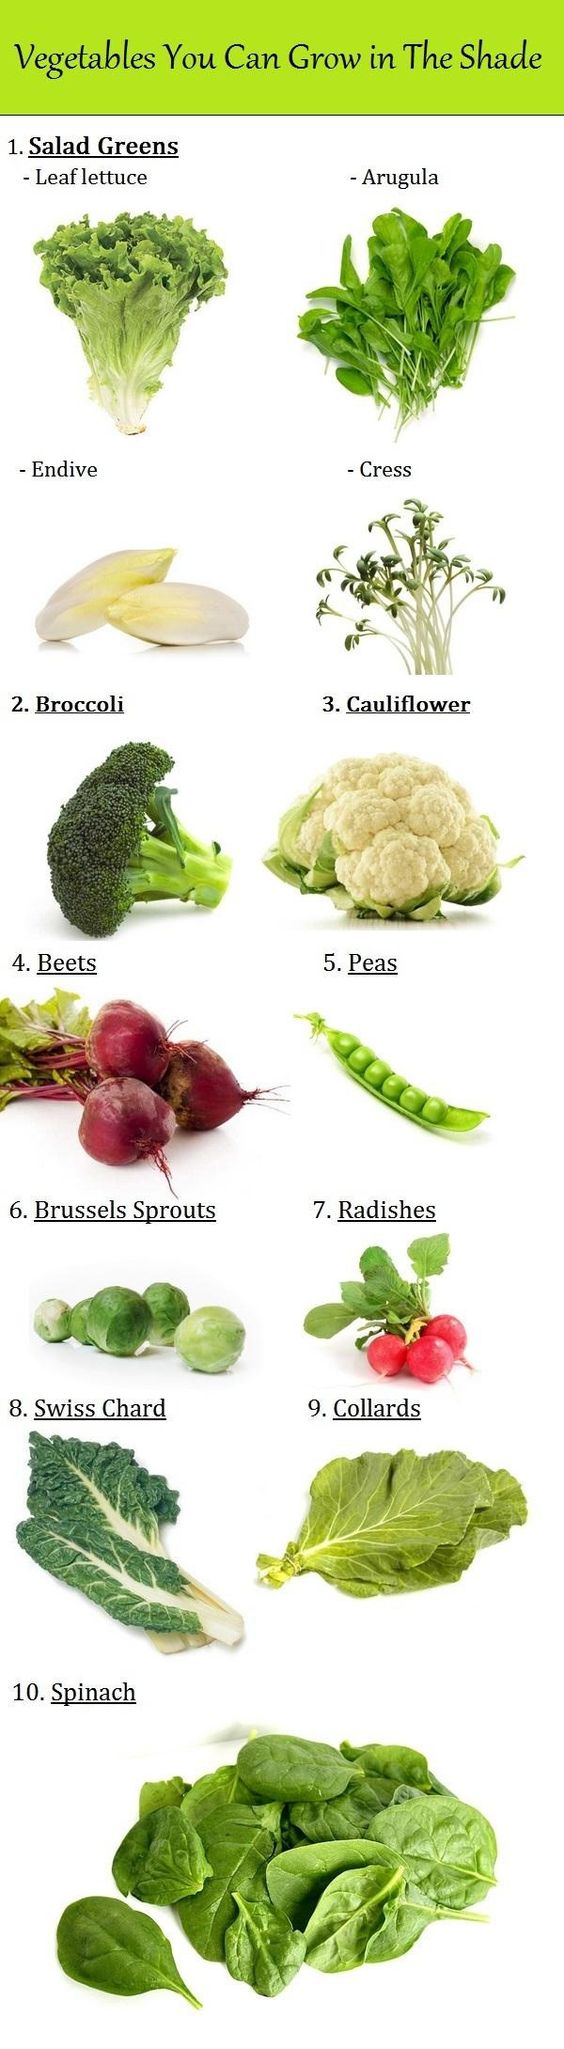 Vegetables You Can Grow In The Shade Gardens Vegetables 640 x 480